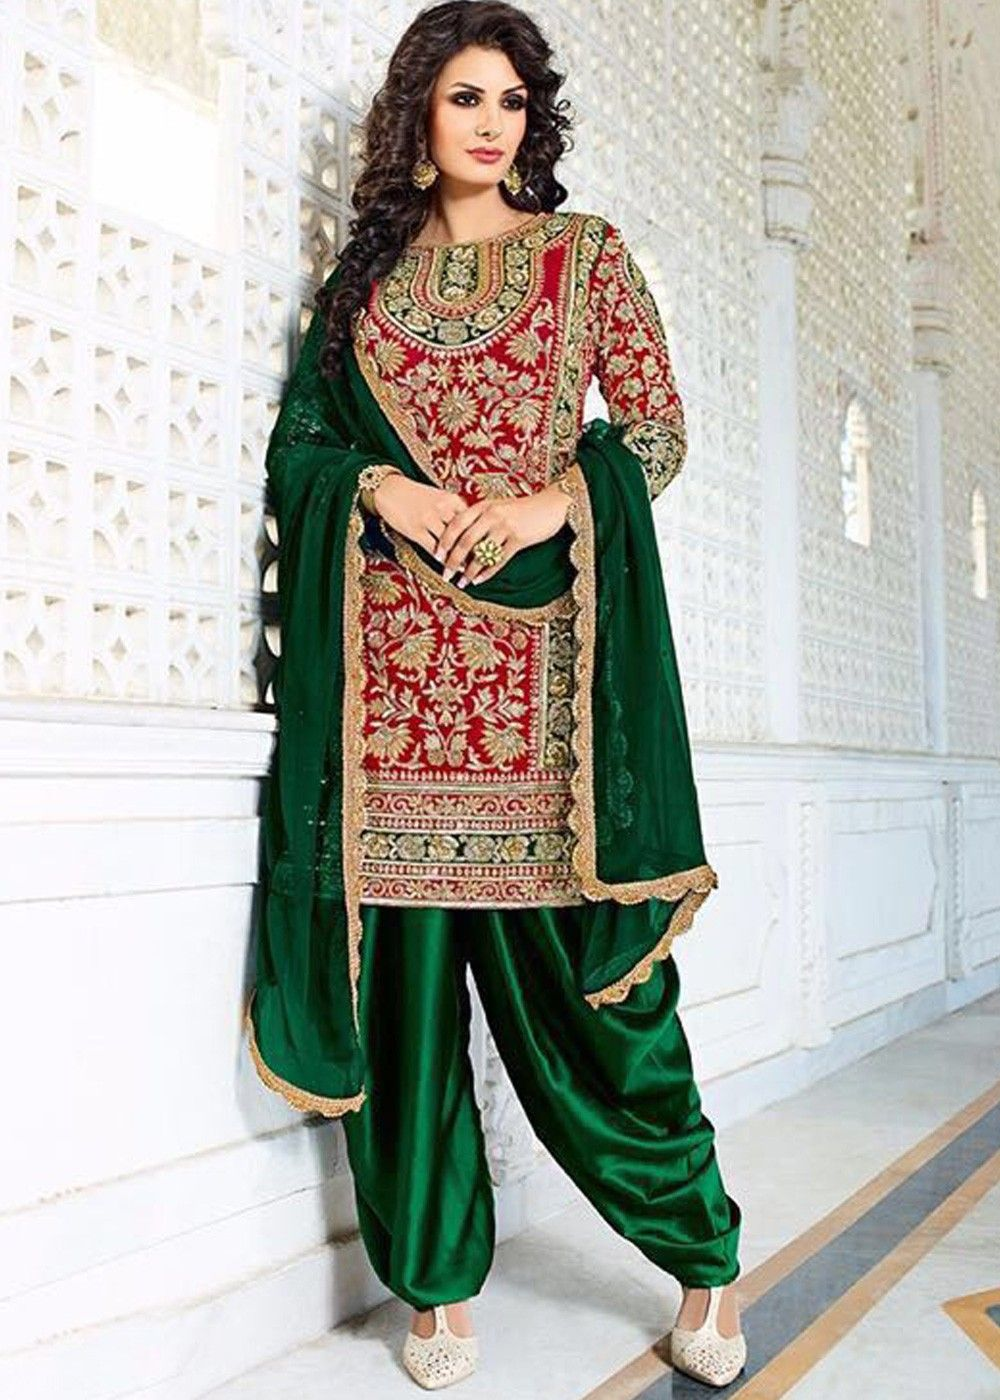 4e5a7441ad Look gorgeous by wearing this #red and #green combination #punjabi #suit for  your special ocassion richly crafted in #silk with zardozi and gota patti  work.